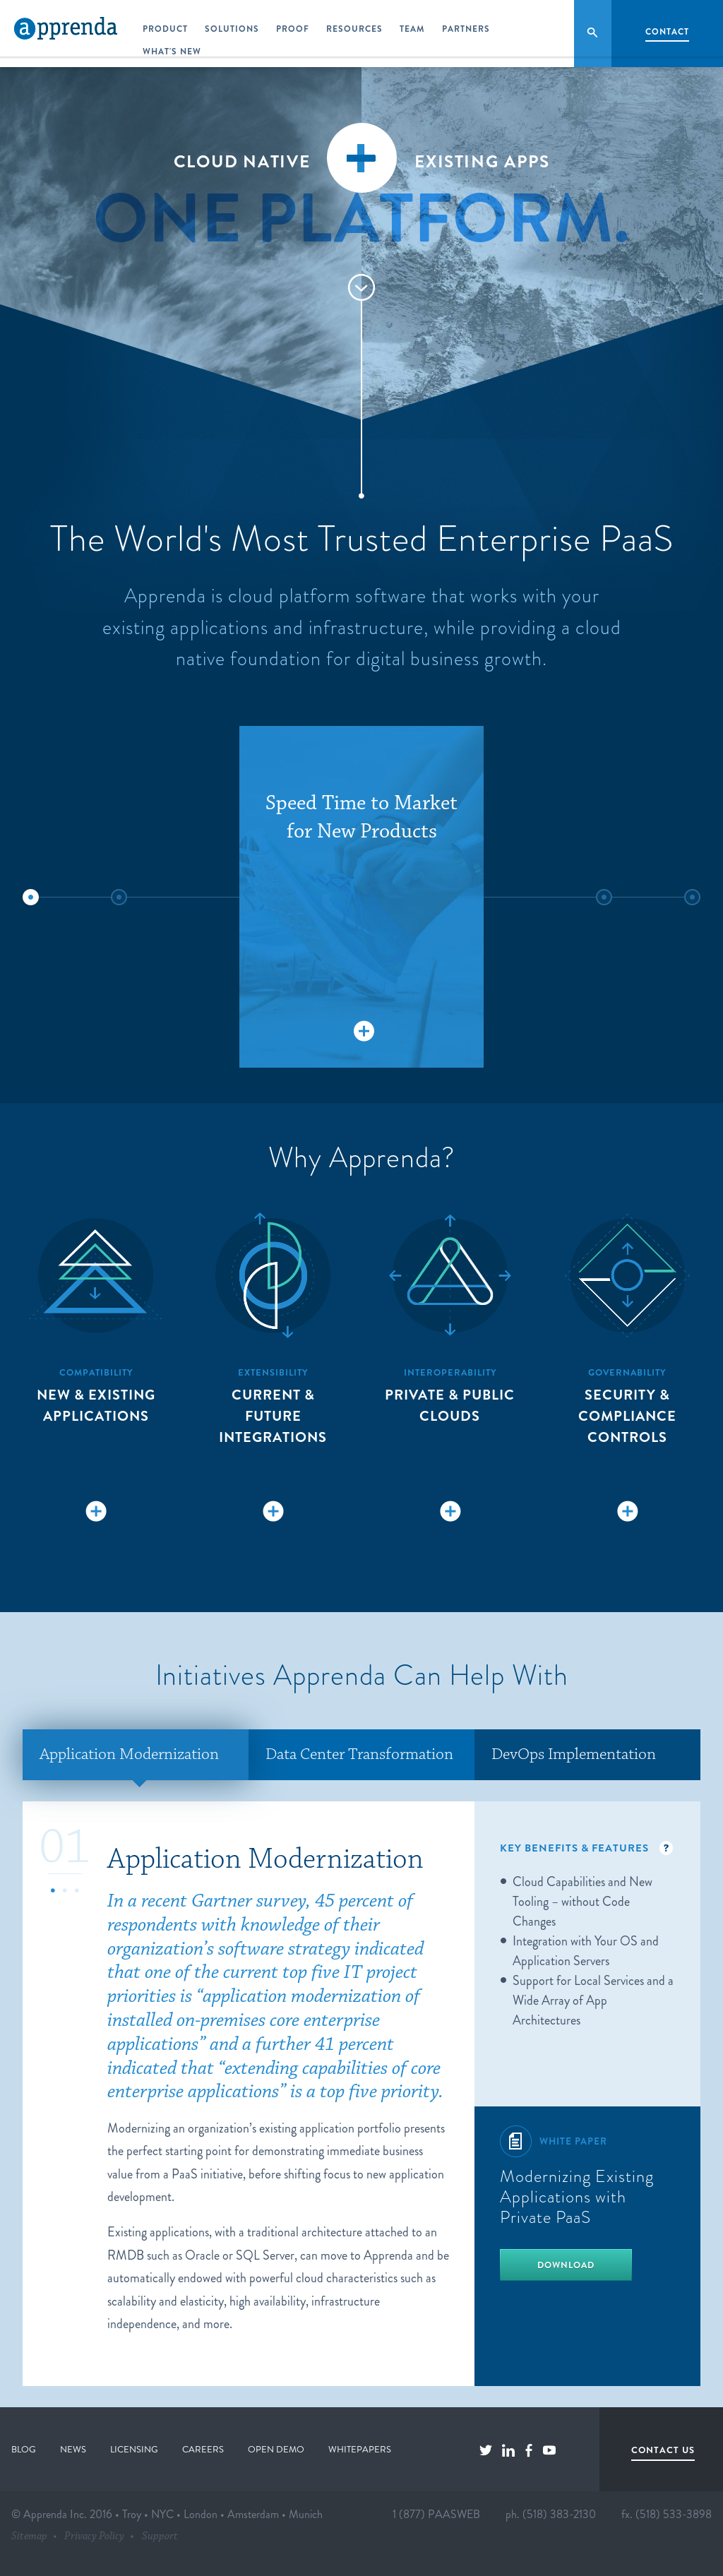 Apprenda a digitar online dating